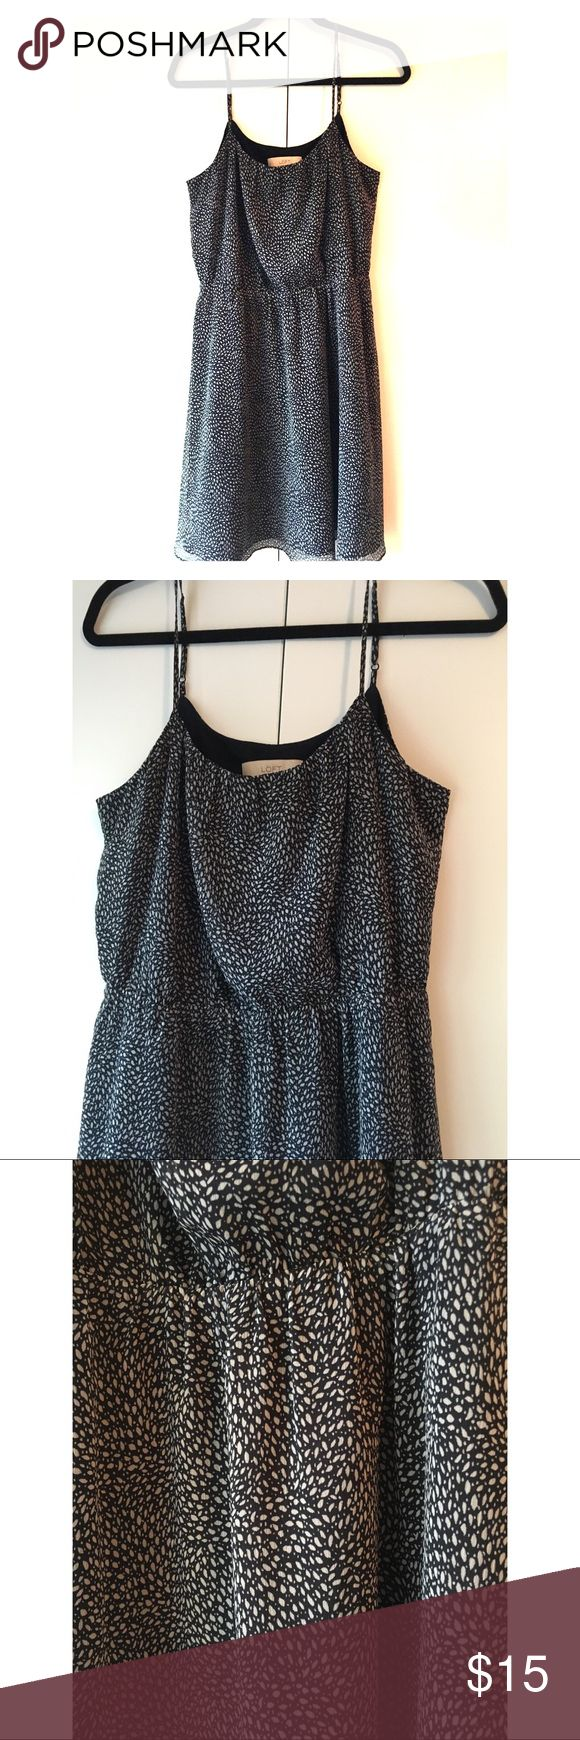 • loft • navy strappy dress • Ann Taylor LOFT navy strappy dress with a white leaf-like pattern. Super adorable dress! Great with a cardigan for work, or with some high heels to a wedding! This dress is on the longer side so great for modesty or tall girls! LOFT Dresses